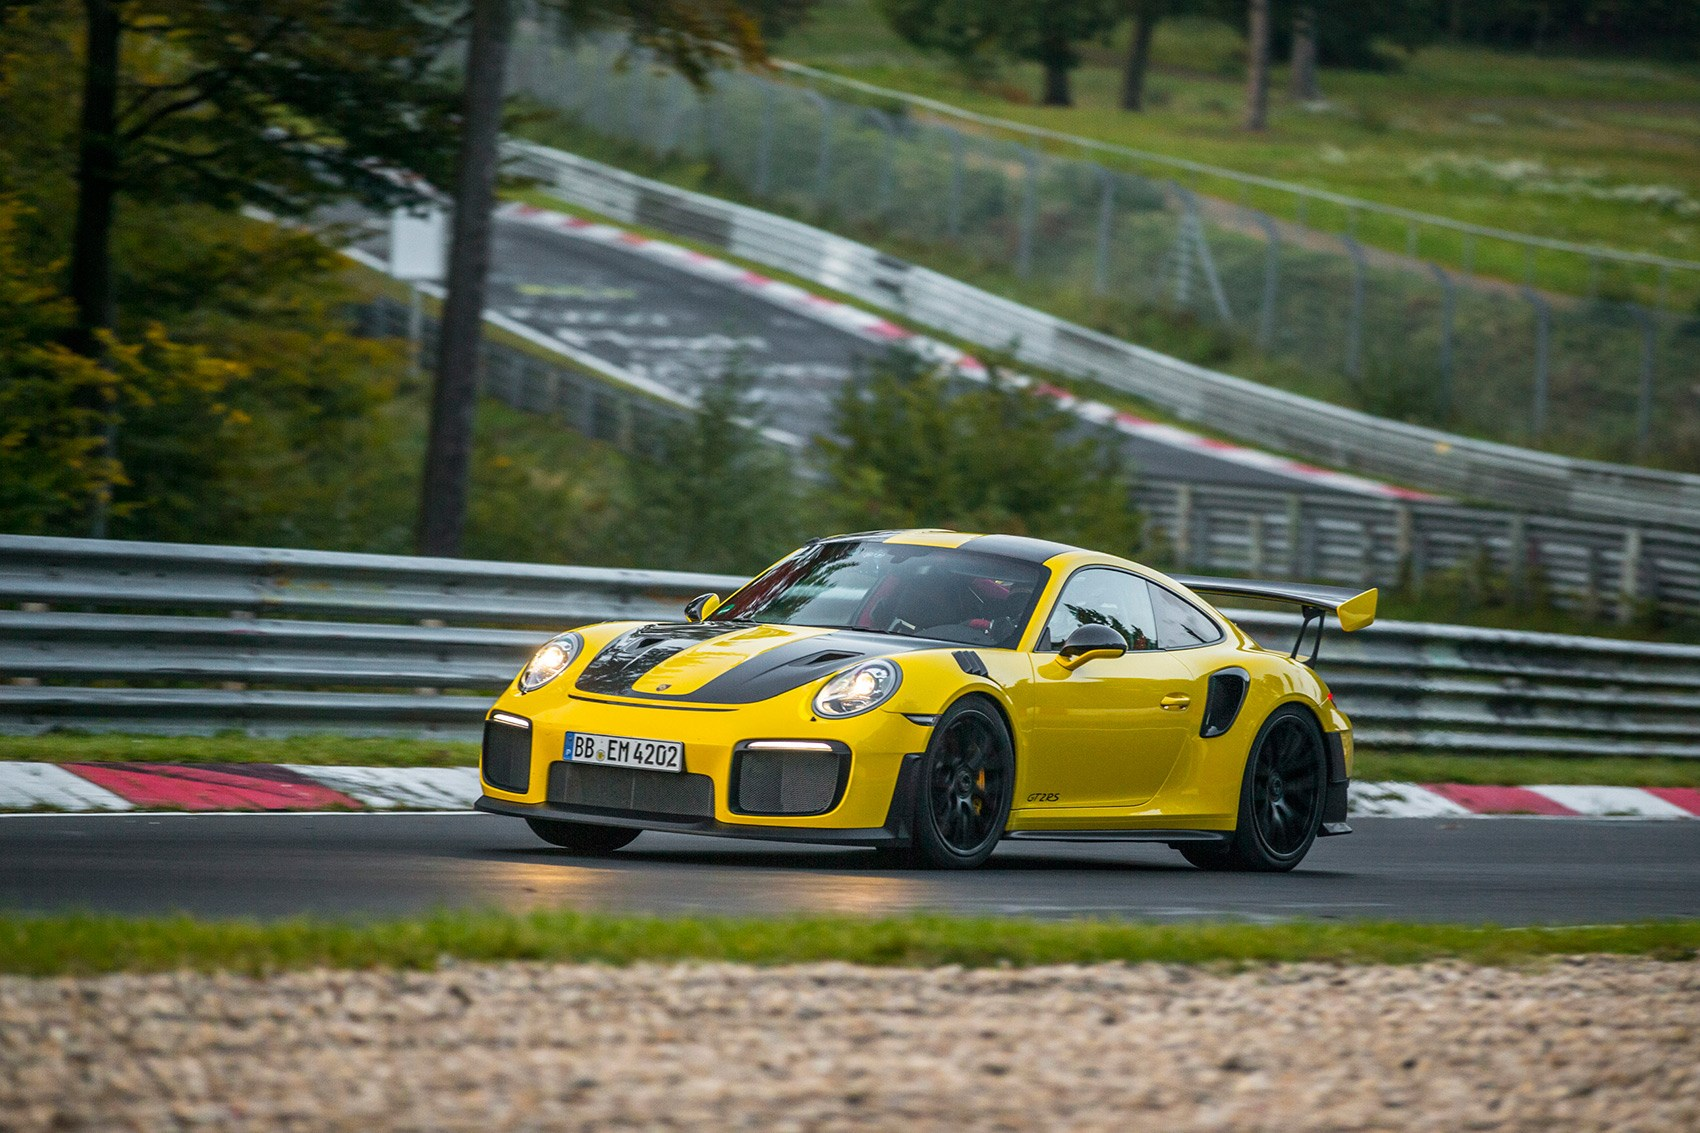 Porsche 911 GT2 RS is the undisputed King of the Ring